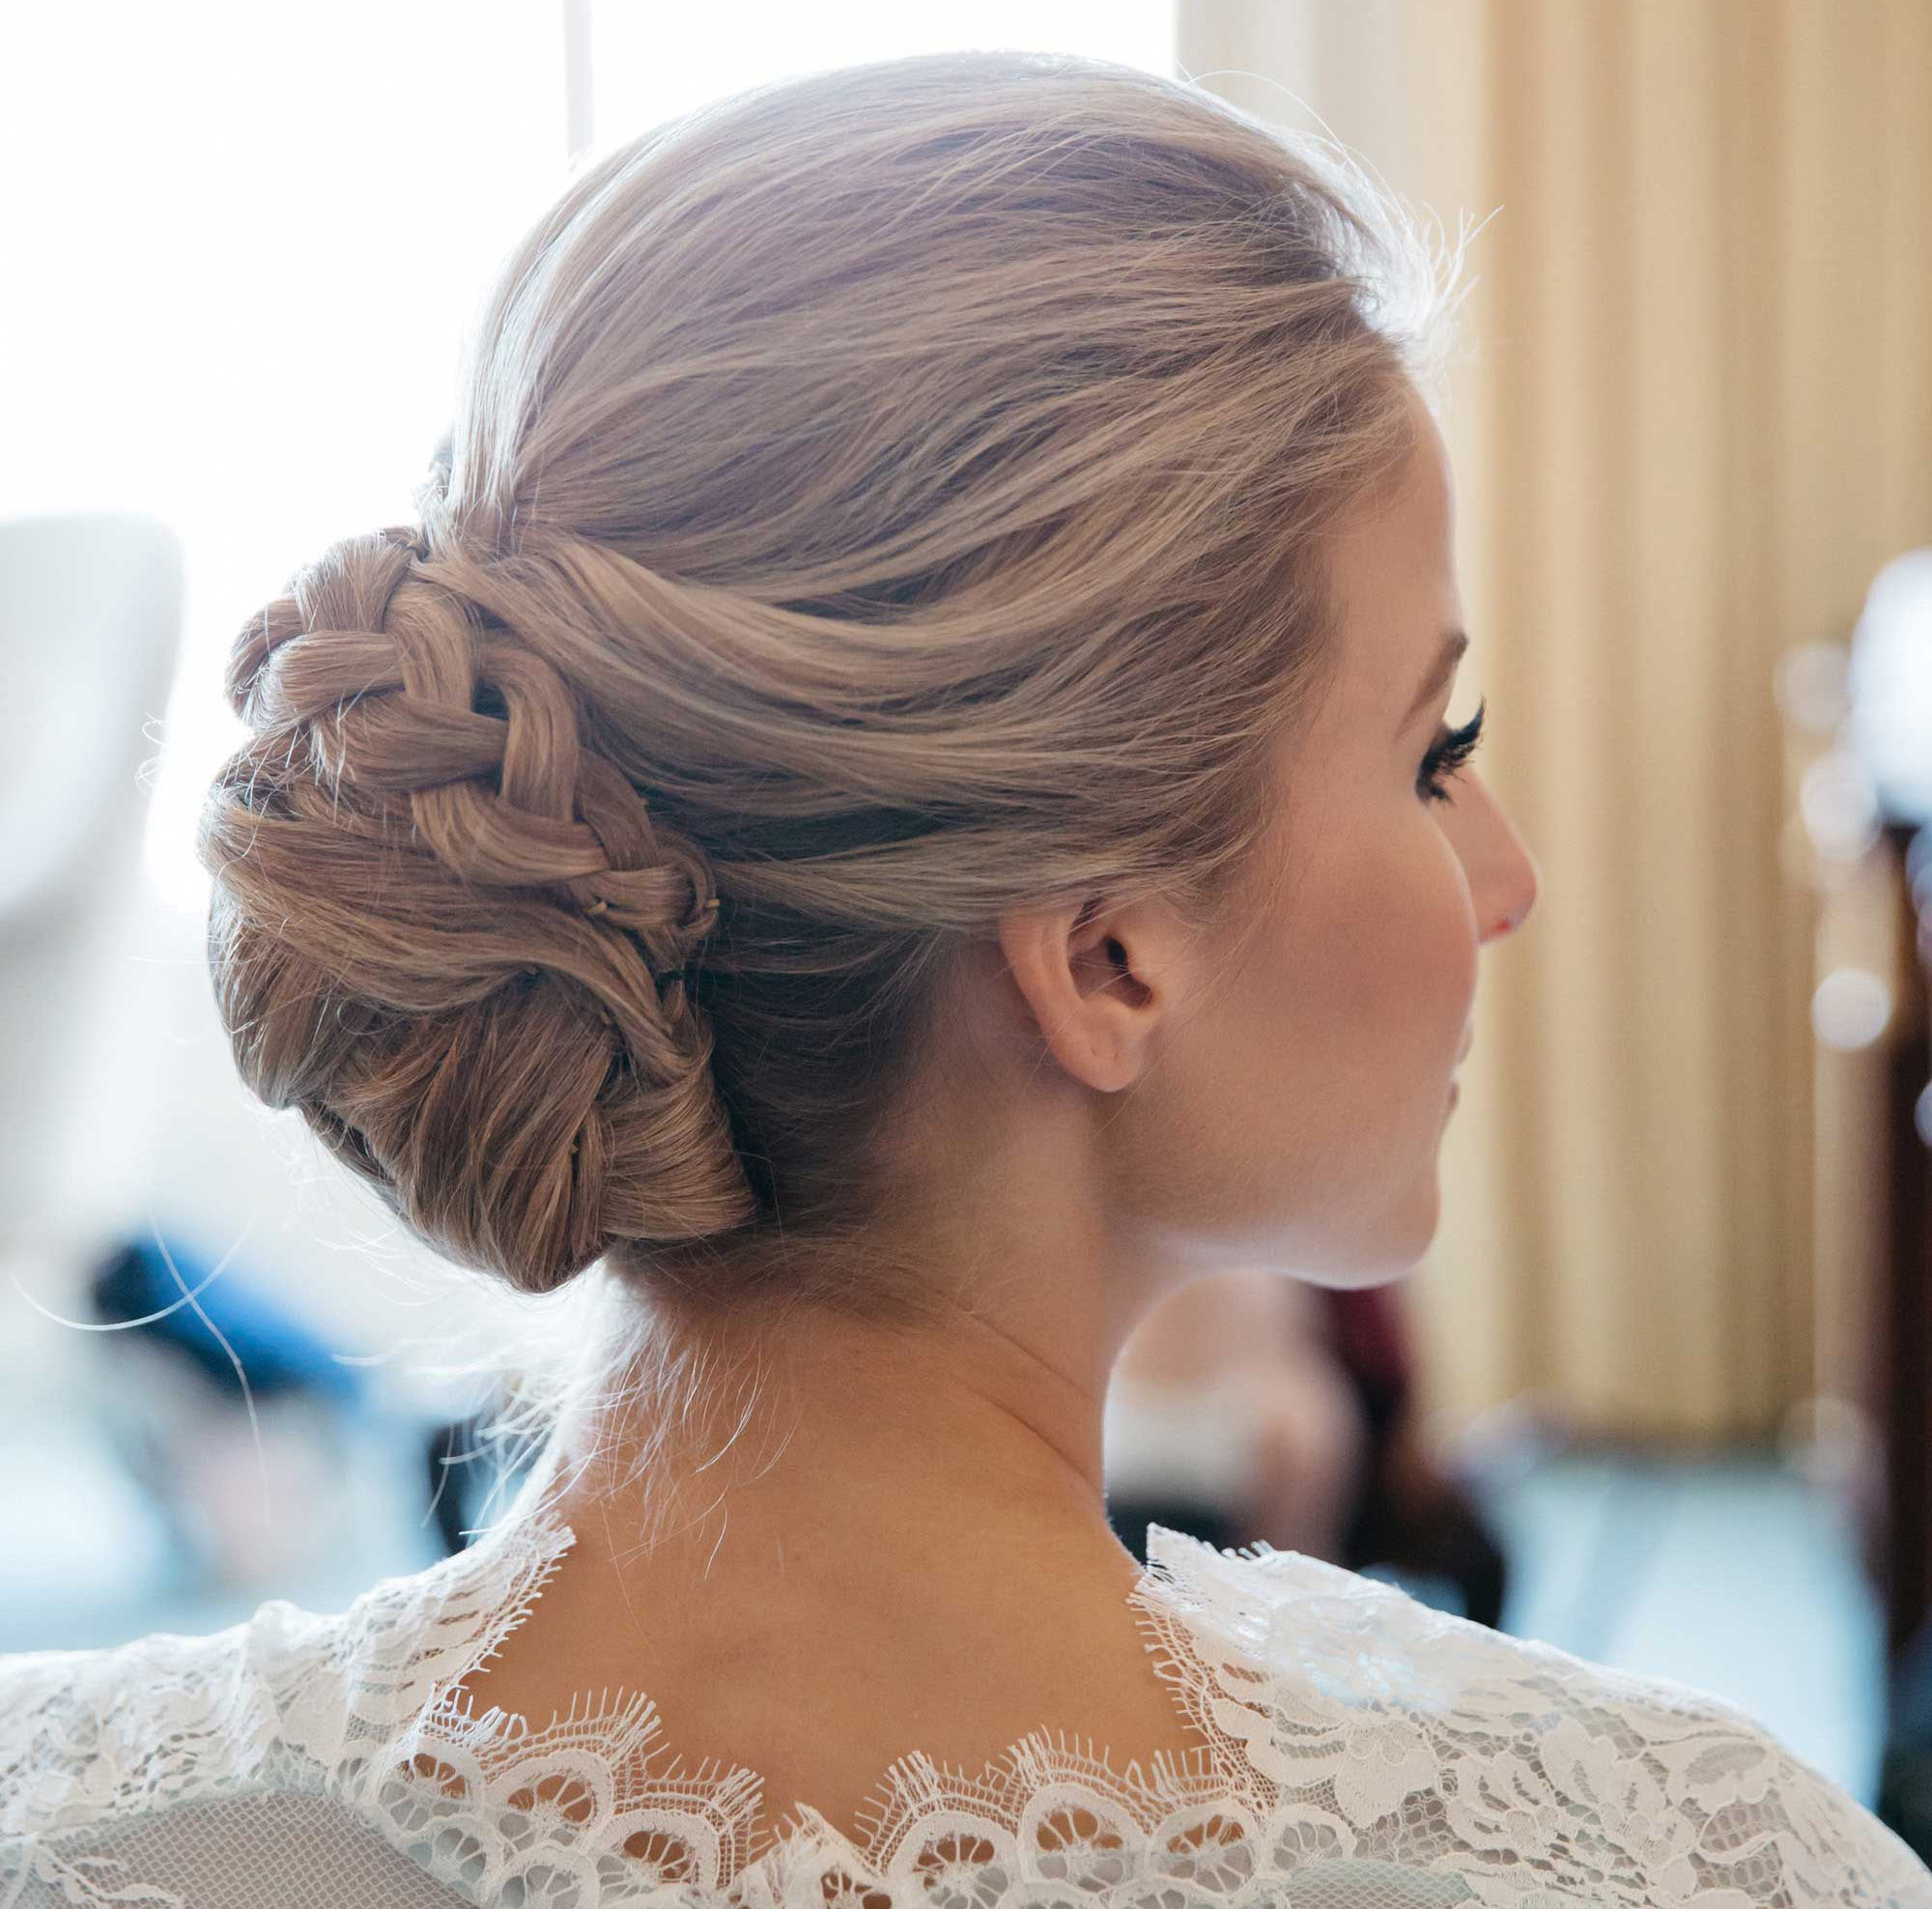 Stupendous Braided Hairstyles 5 Ideas For Your Wedding Look Inside Weddings Short Hairstyles For Black Women Fulllsitofus